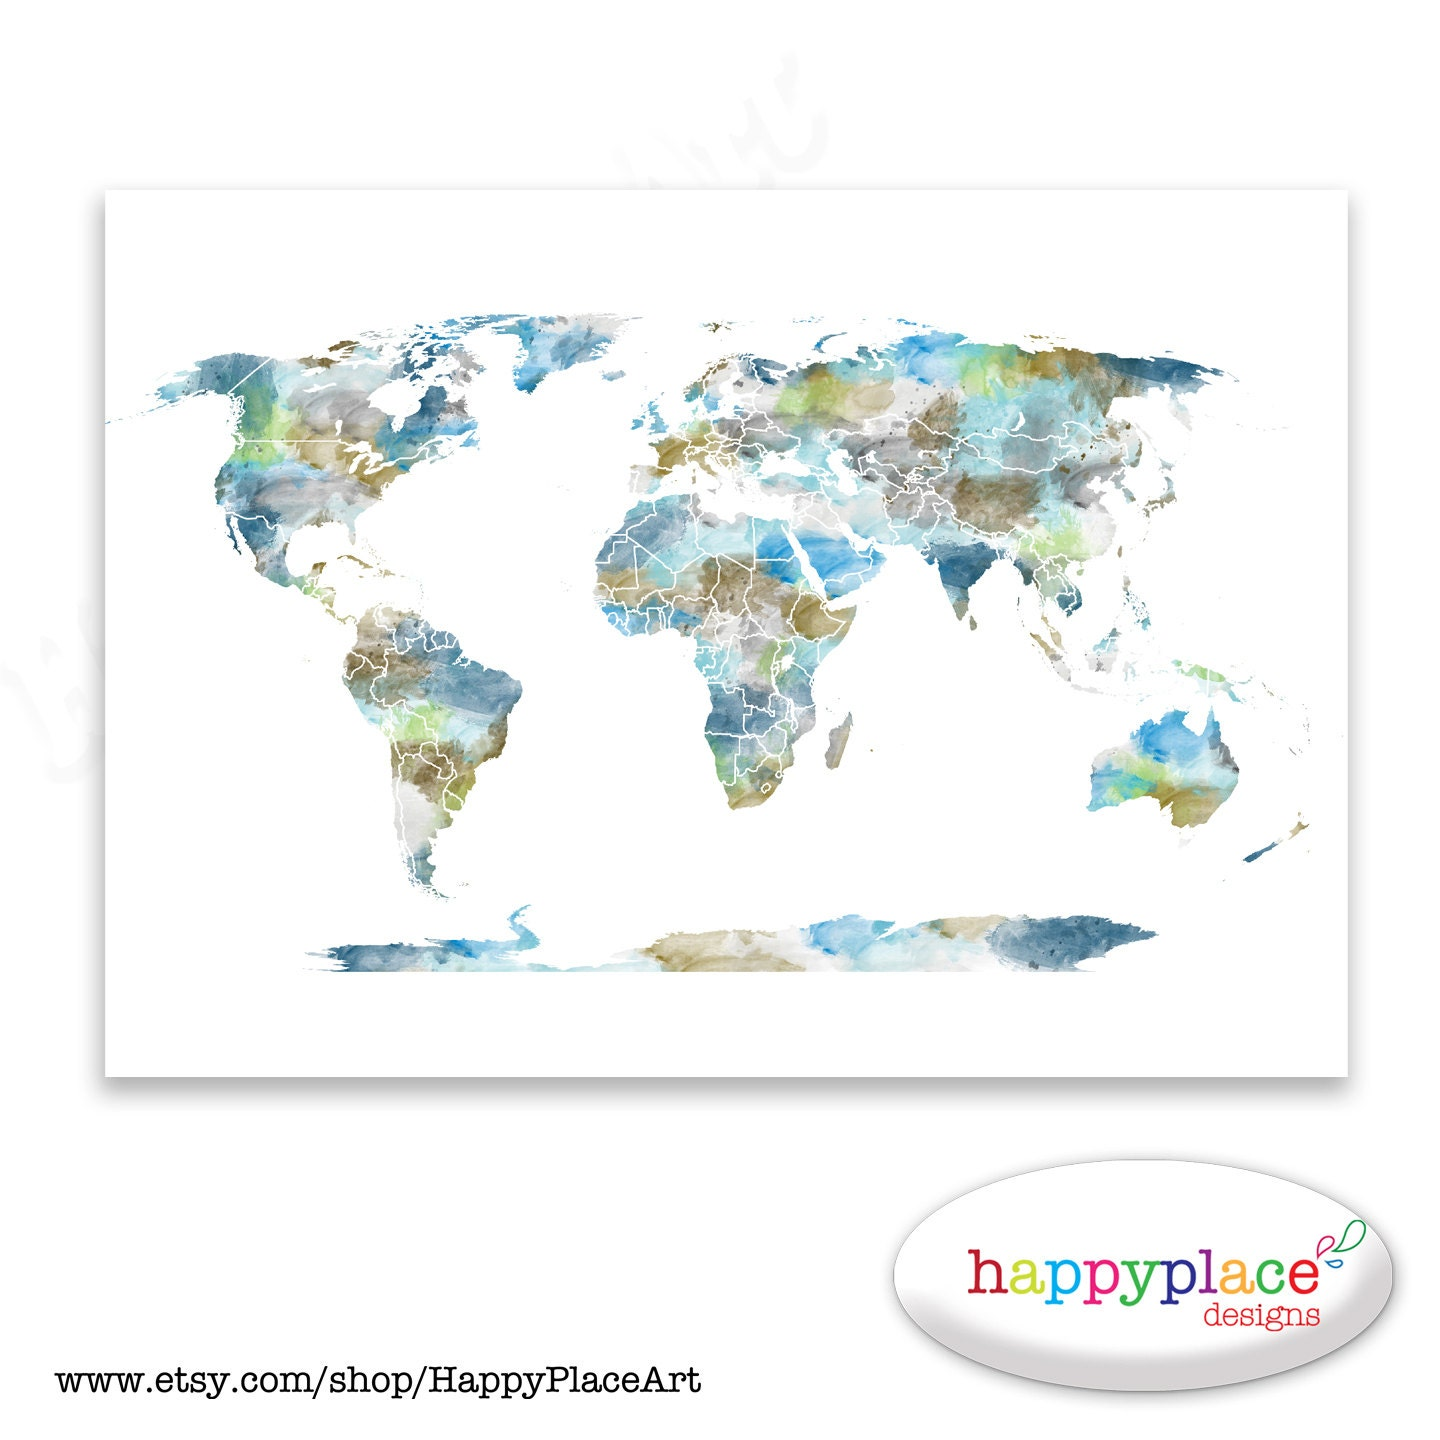 Watercolour World Map Poster. Large World Map with Watercolor   Etsy